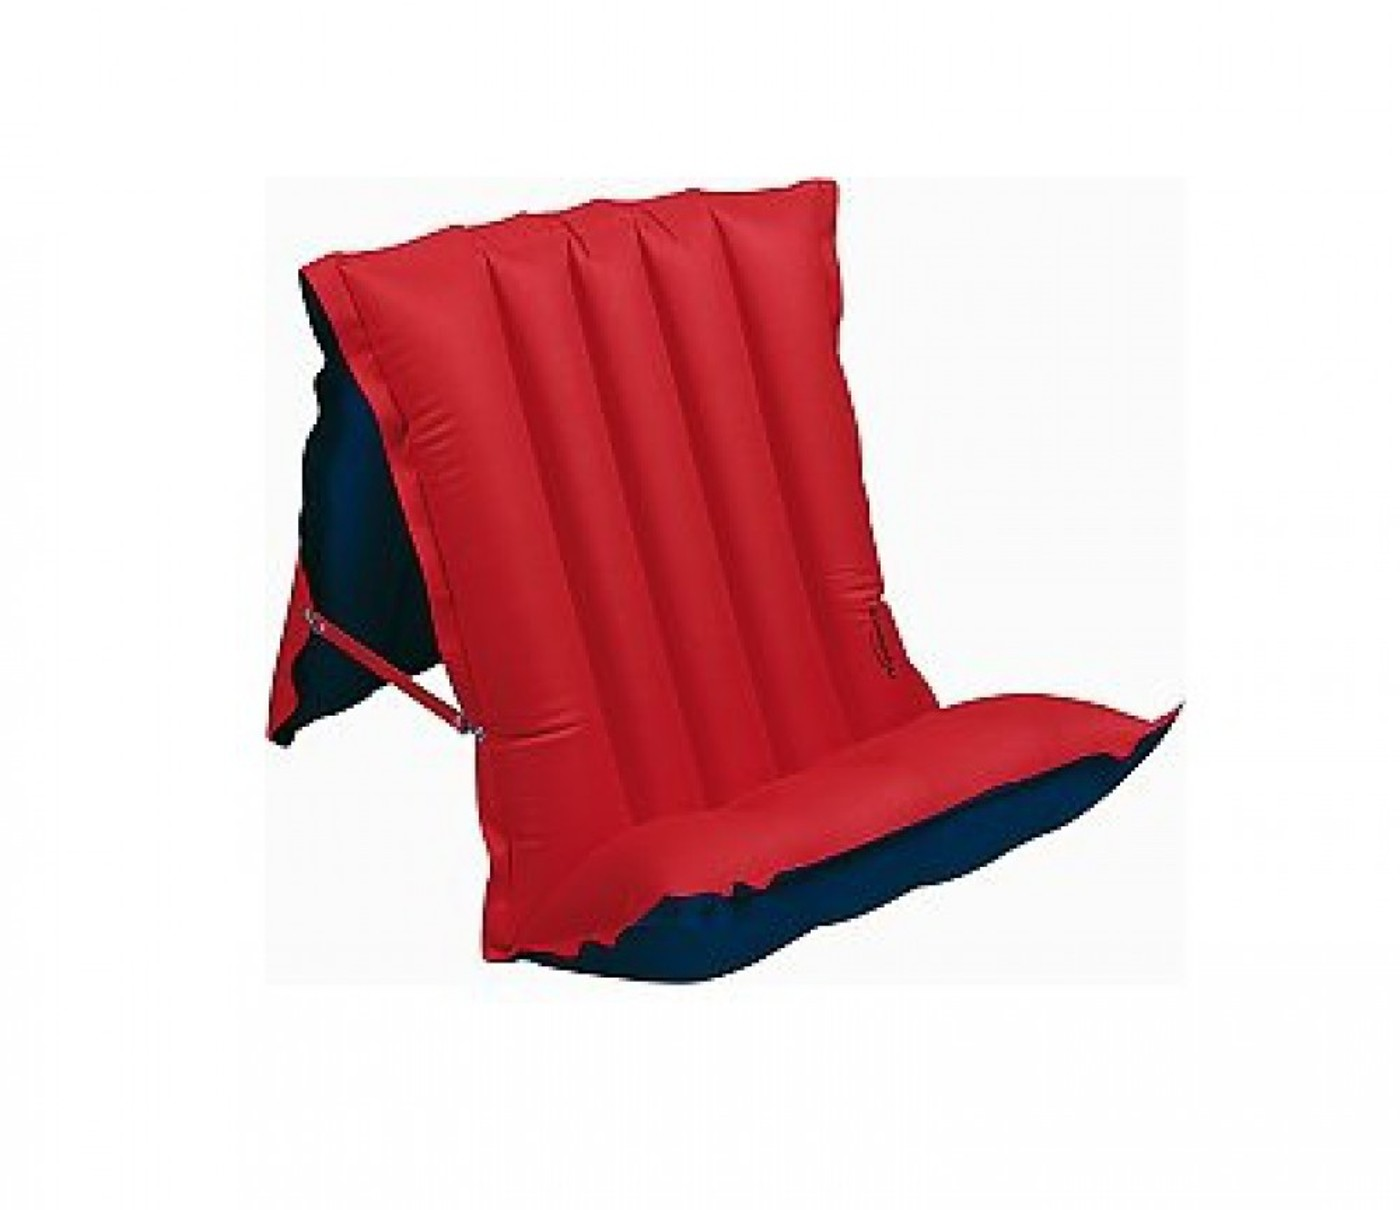 HIGH COLORADO CHAIR AIR BED